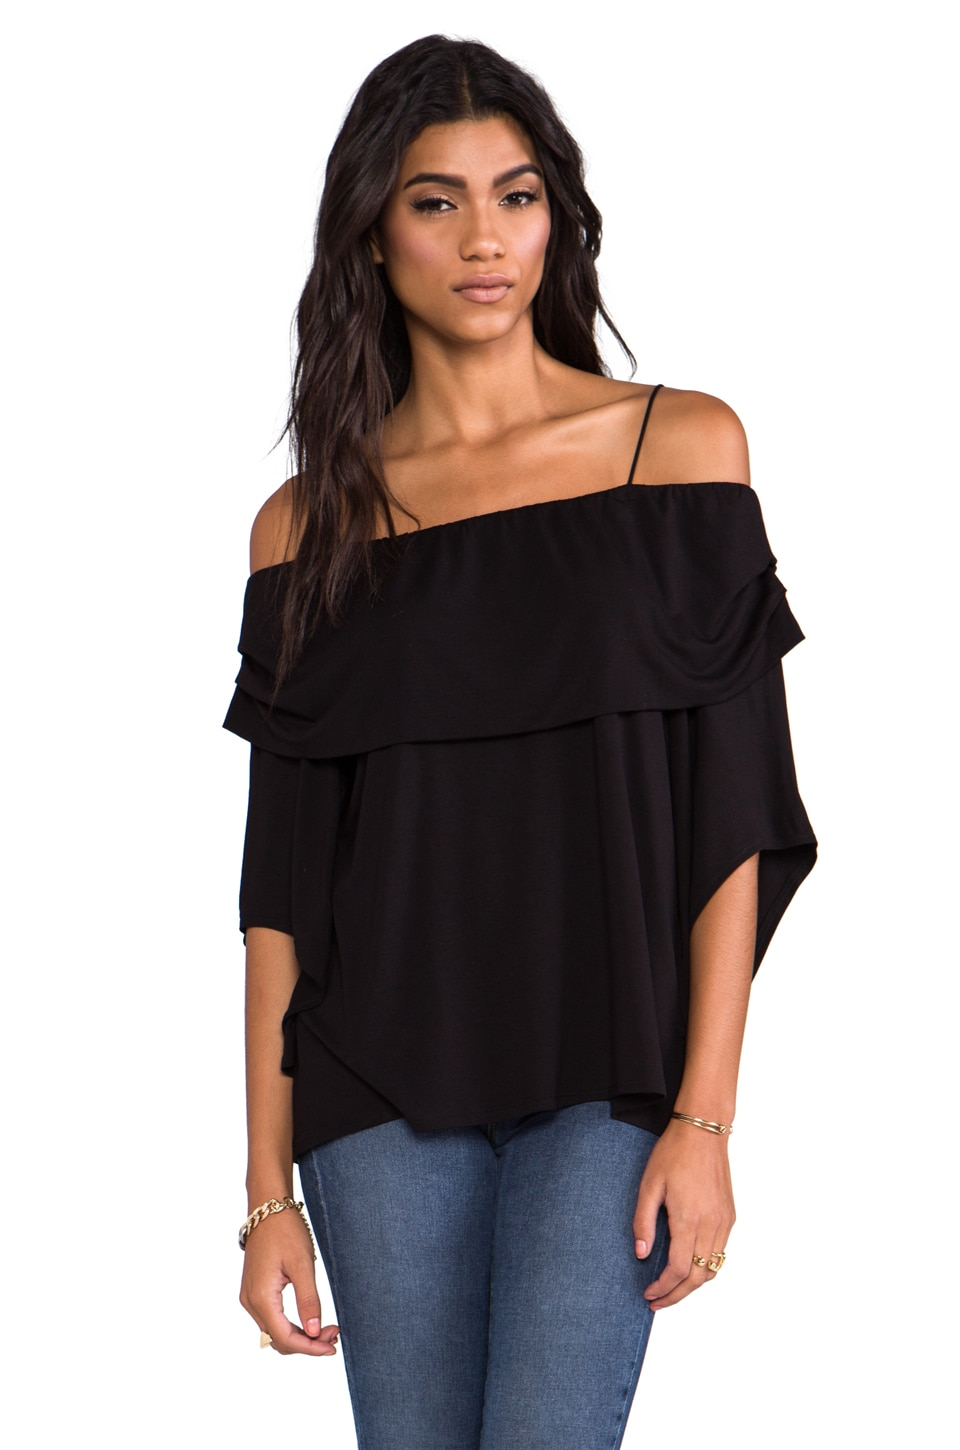 James & Joy Julie Open Shoulder Top in Black